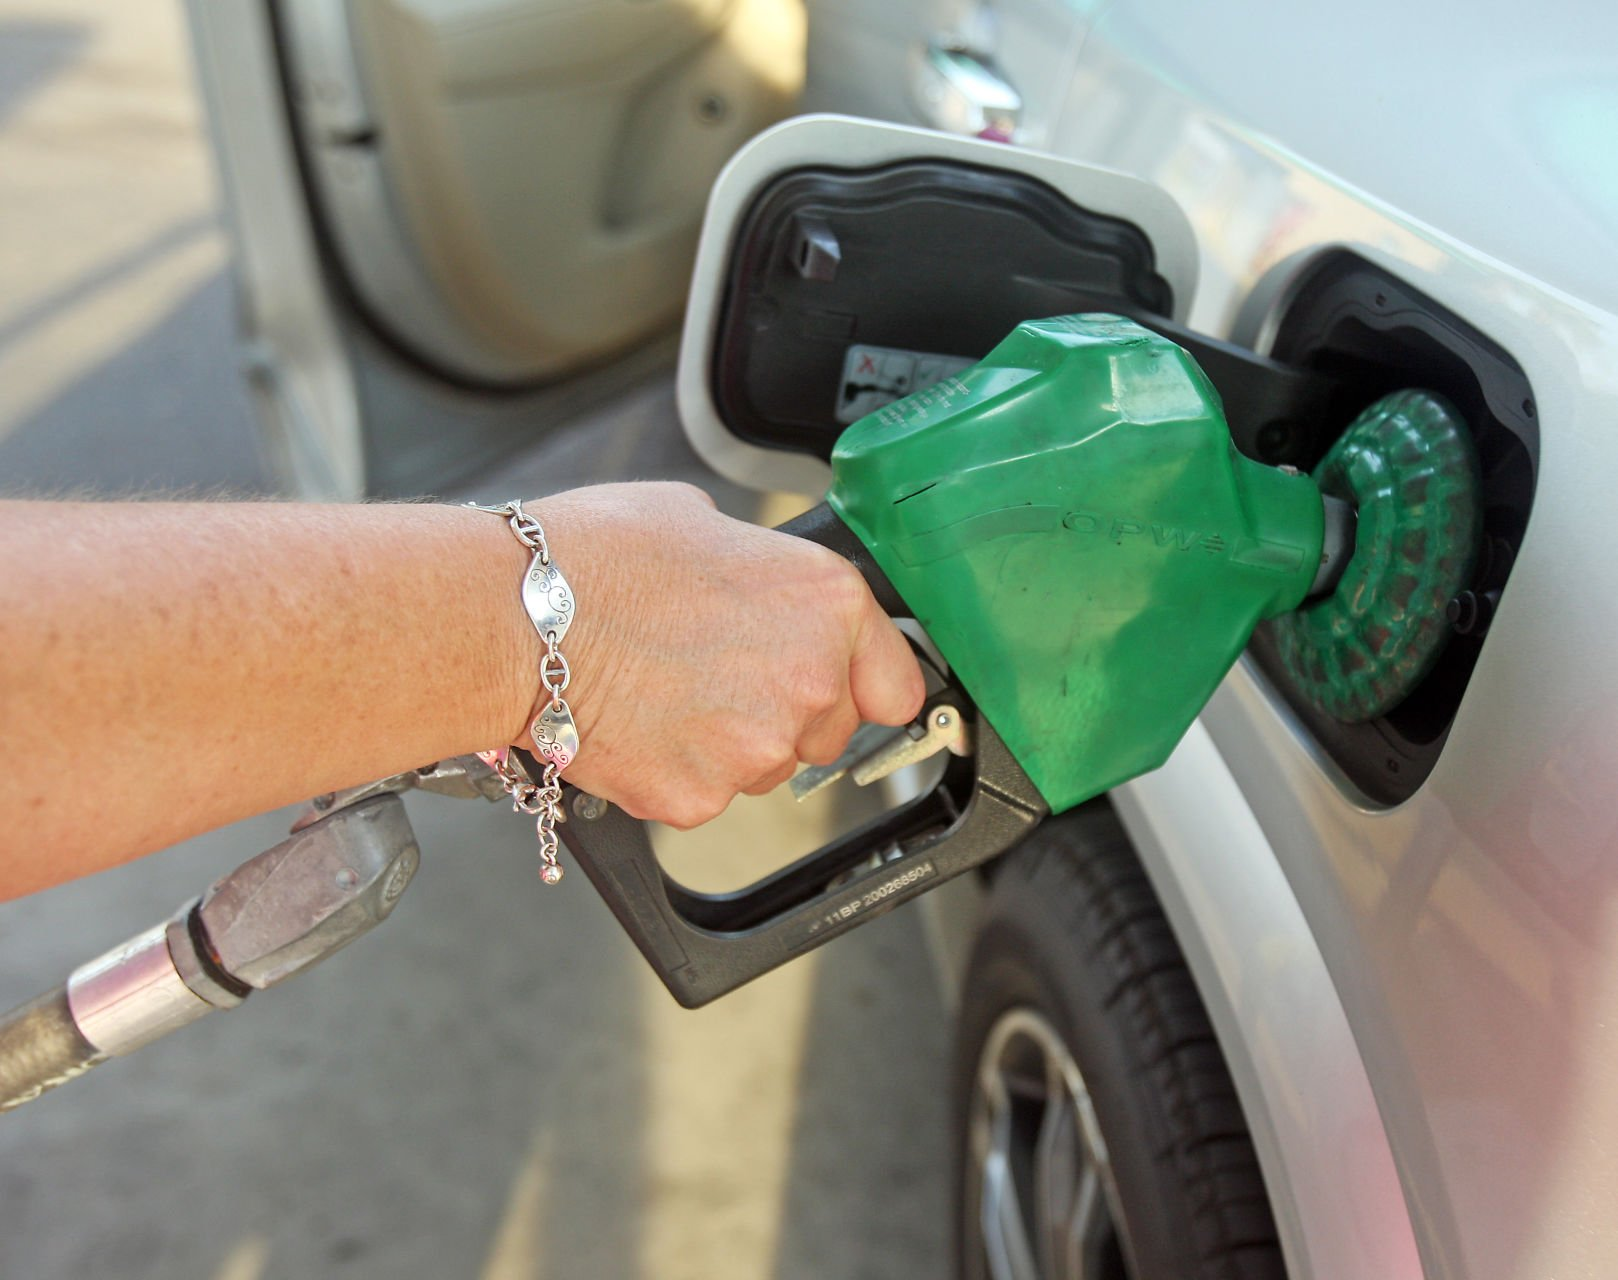 Valdosta's gasoline prices spike